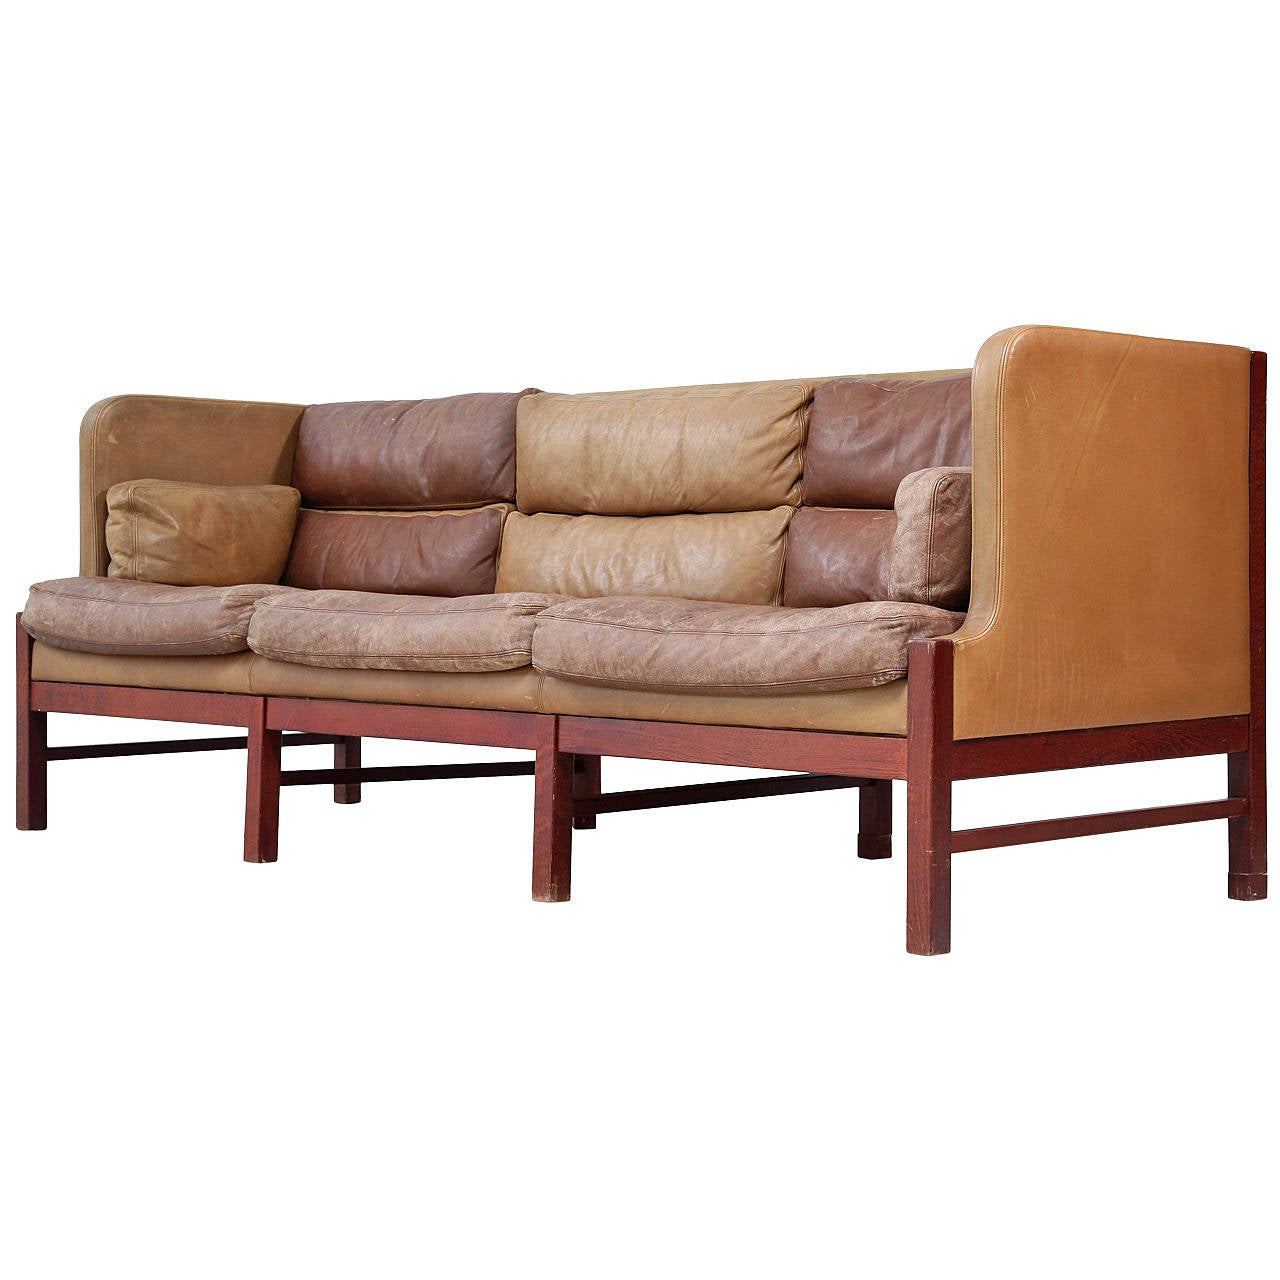 High back three seat sofa in duo tone brown leather at 1stdibs for High back leather sectional sofa